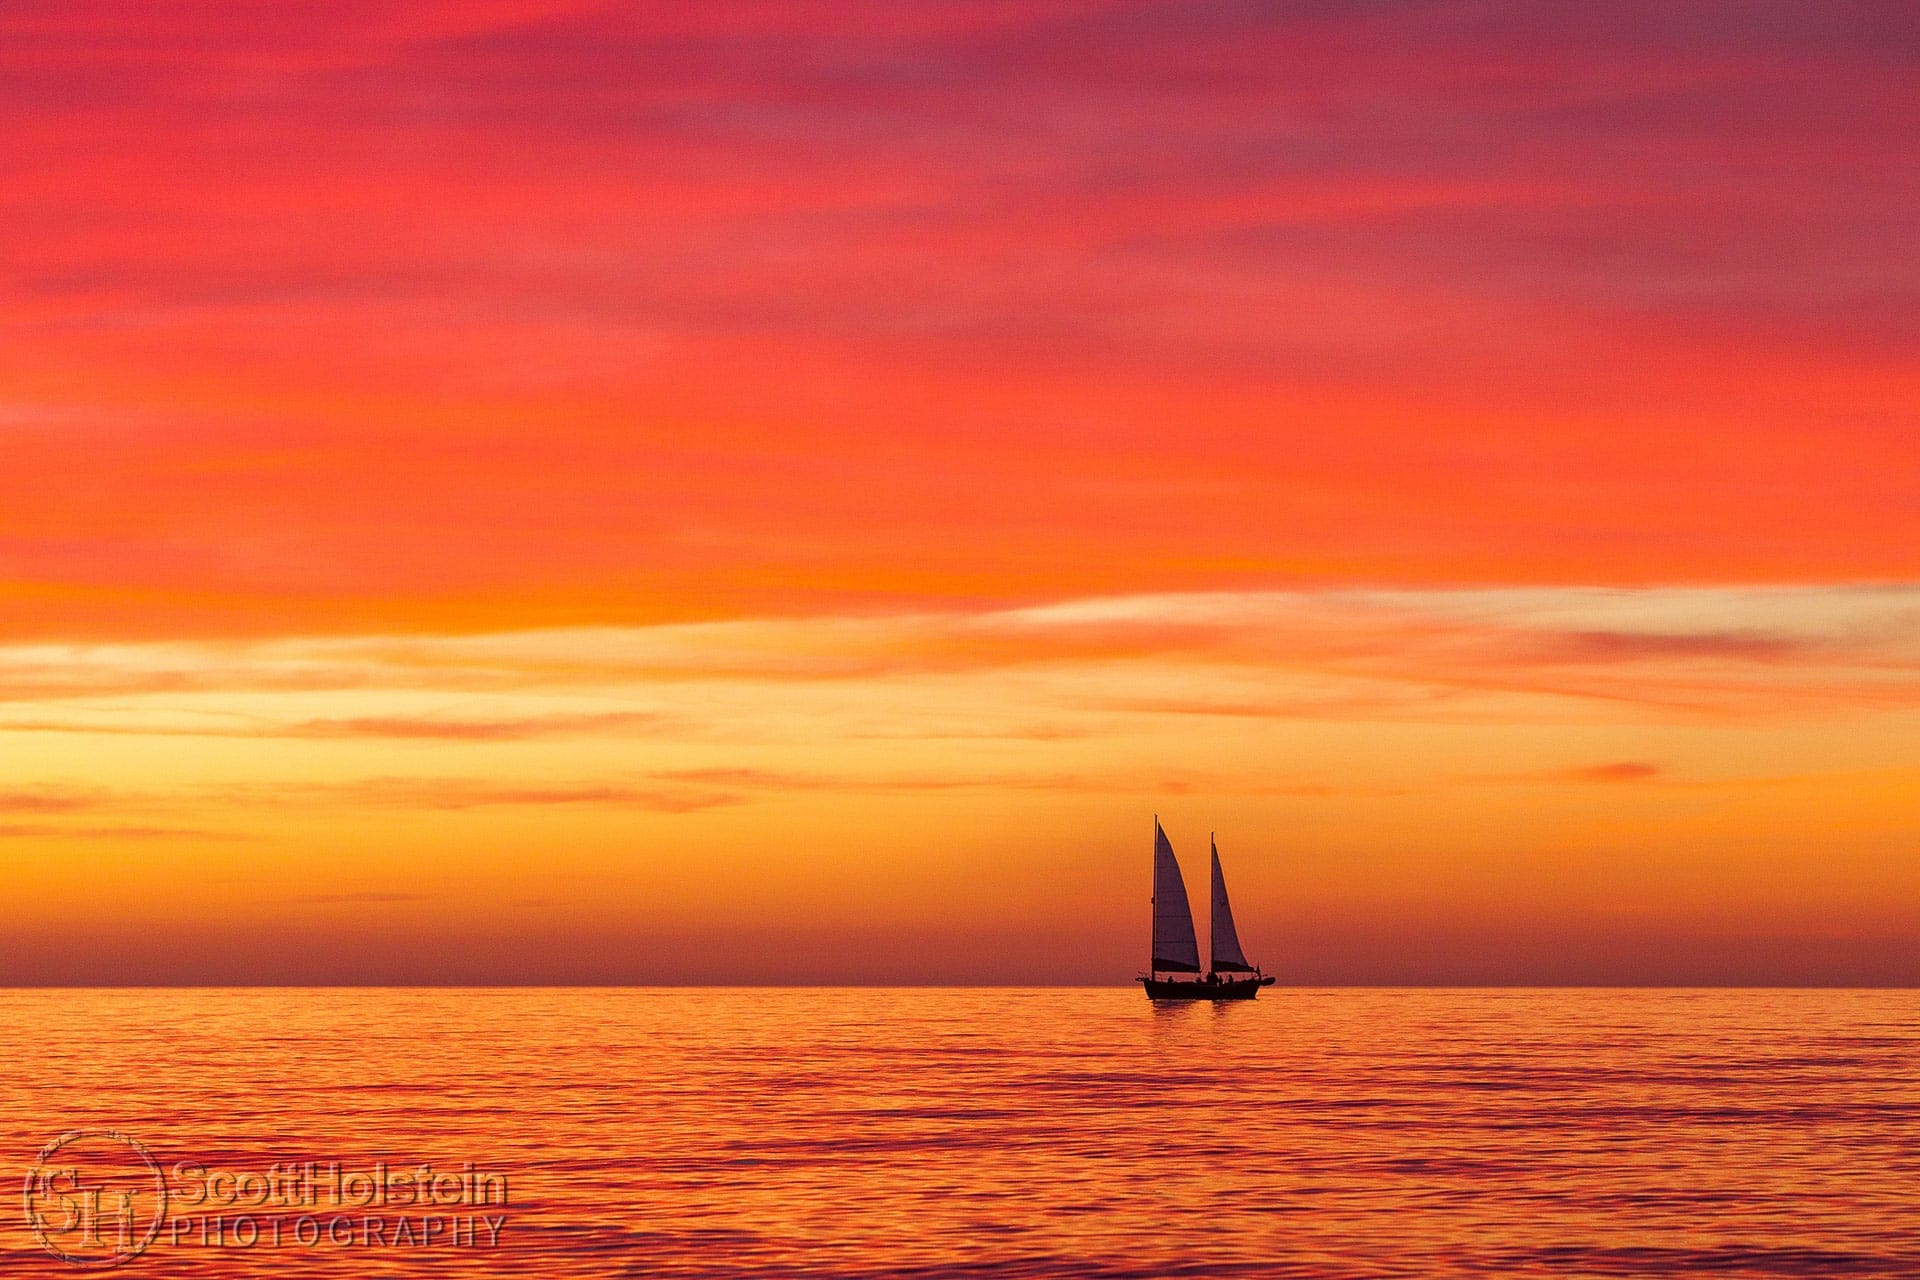 A sailboat is silhouetted against a pink sky during a Florida beach sunset.